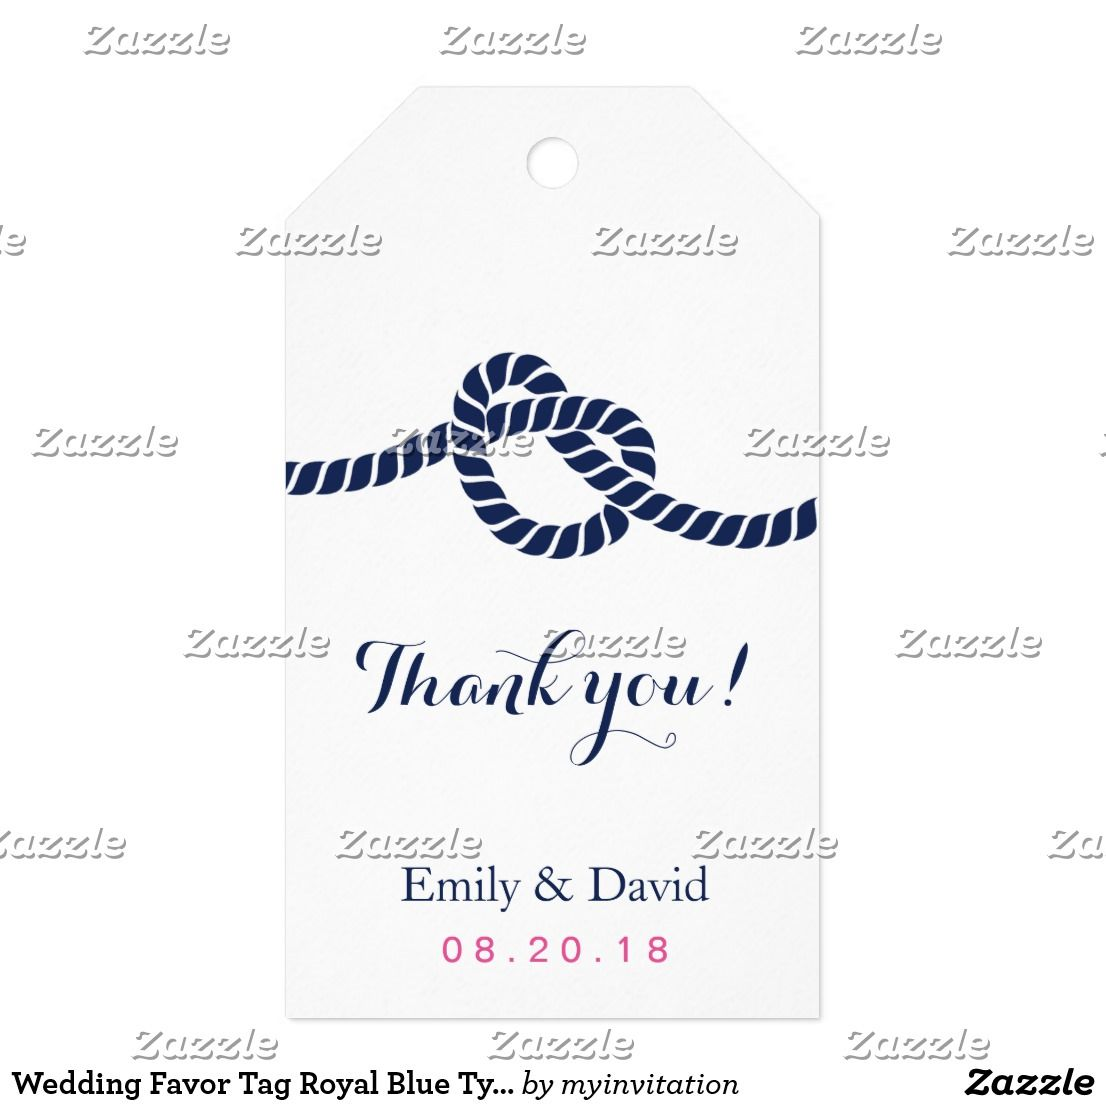 Wedding Favor Tag Royal Blue Tying the Knot Royal Blue Tying the ...